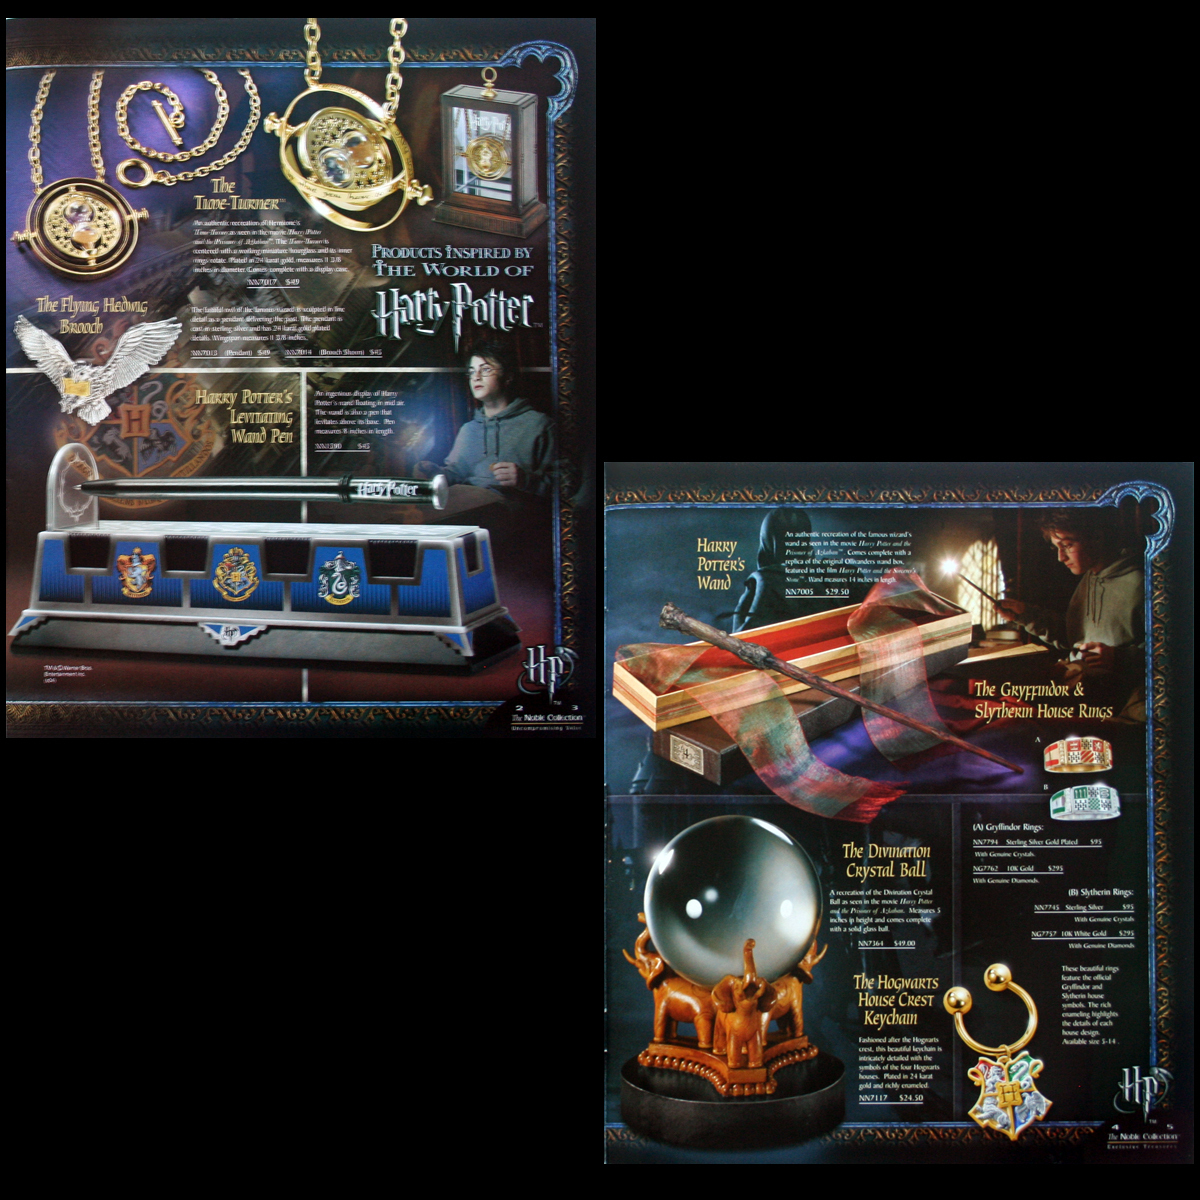 2003/2004 Noble Collection Catalogs Harry Potter,LOTR